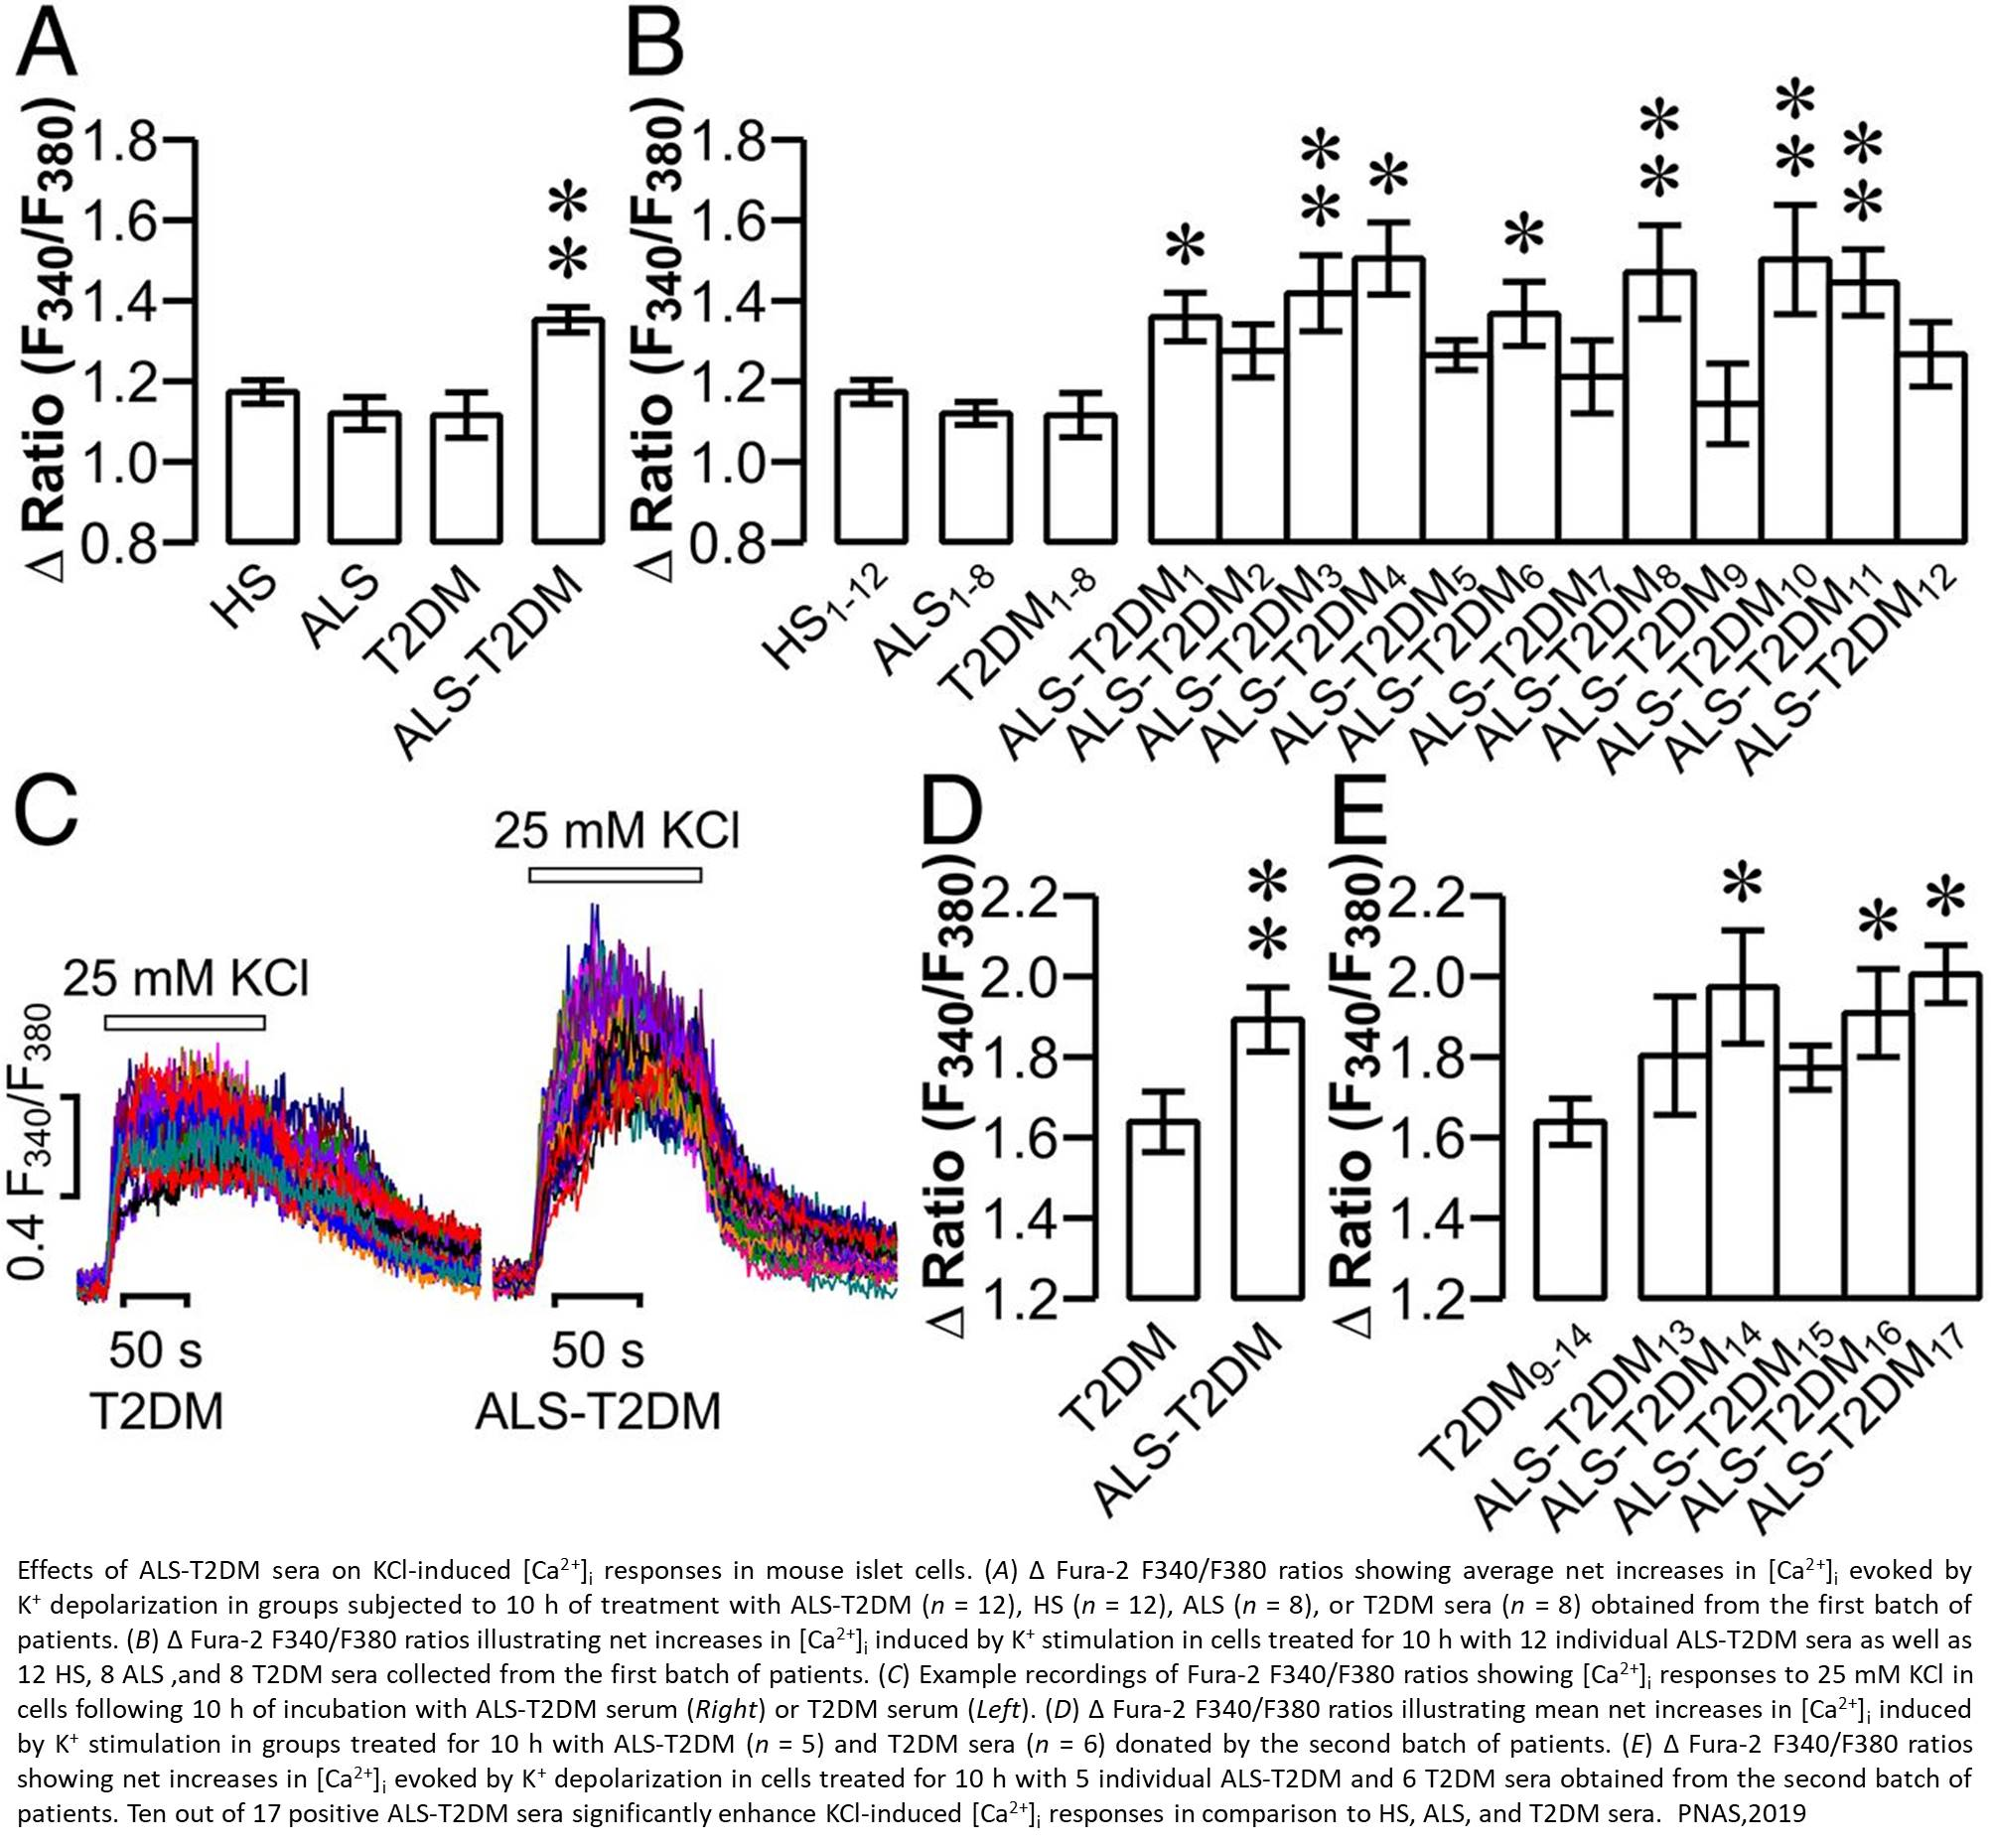 Auto-antibodies from ALS may be responsible type 2 diabetes in patients